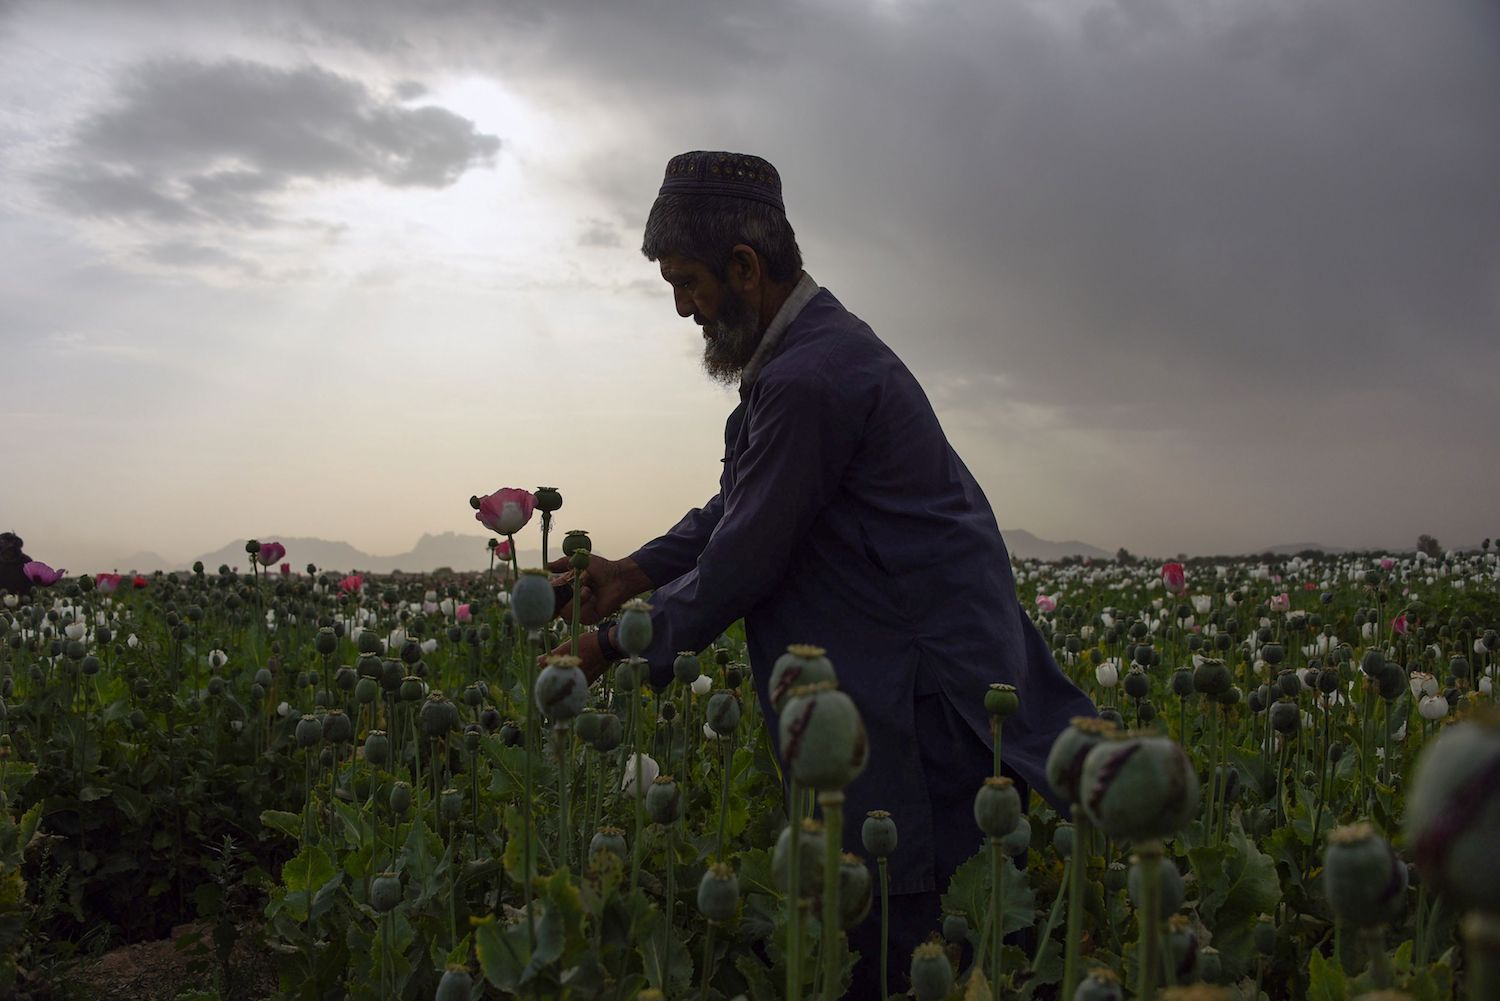 An Afghan farmers harvests opium sap from a poppy field in Zari District in Kandahar province on April 9, 2018. The US government has spent billions of dollars on a war to eliminate drugs from Afghanistan, but the country still remains the world's top opium producer. / AFP PHOTO / JAVED TANVEER        (Photo credit should read JAVED TANVEER/AFP/Getty Images)